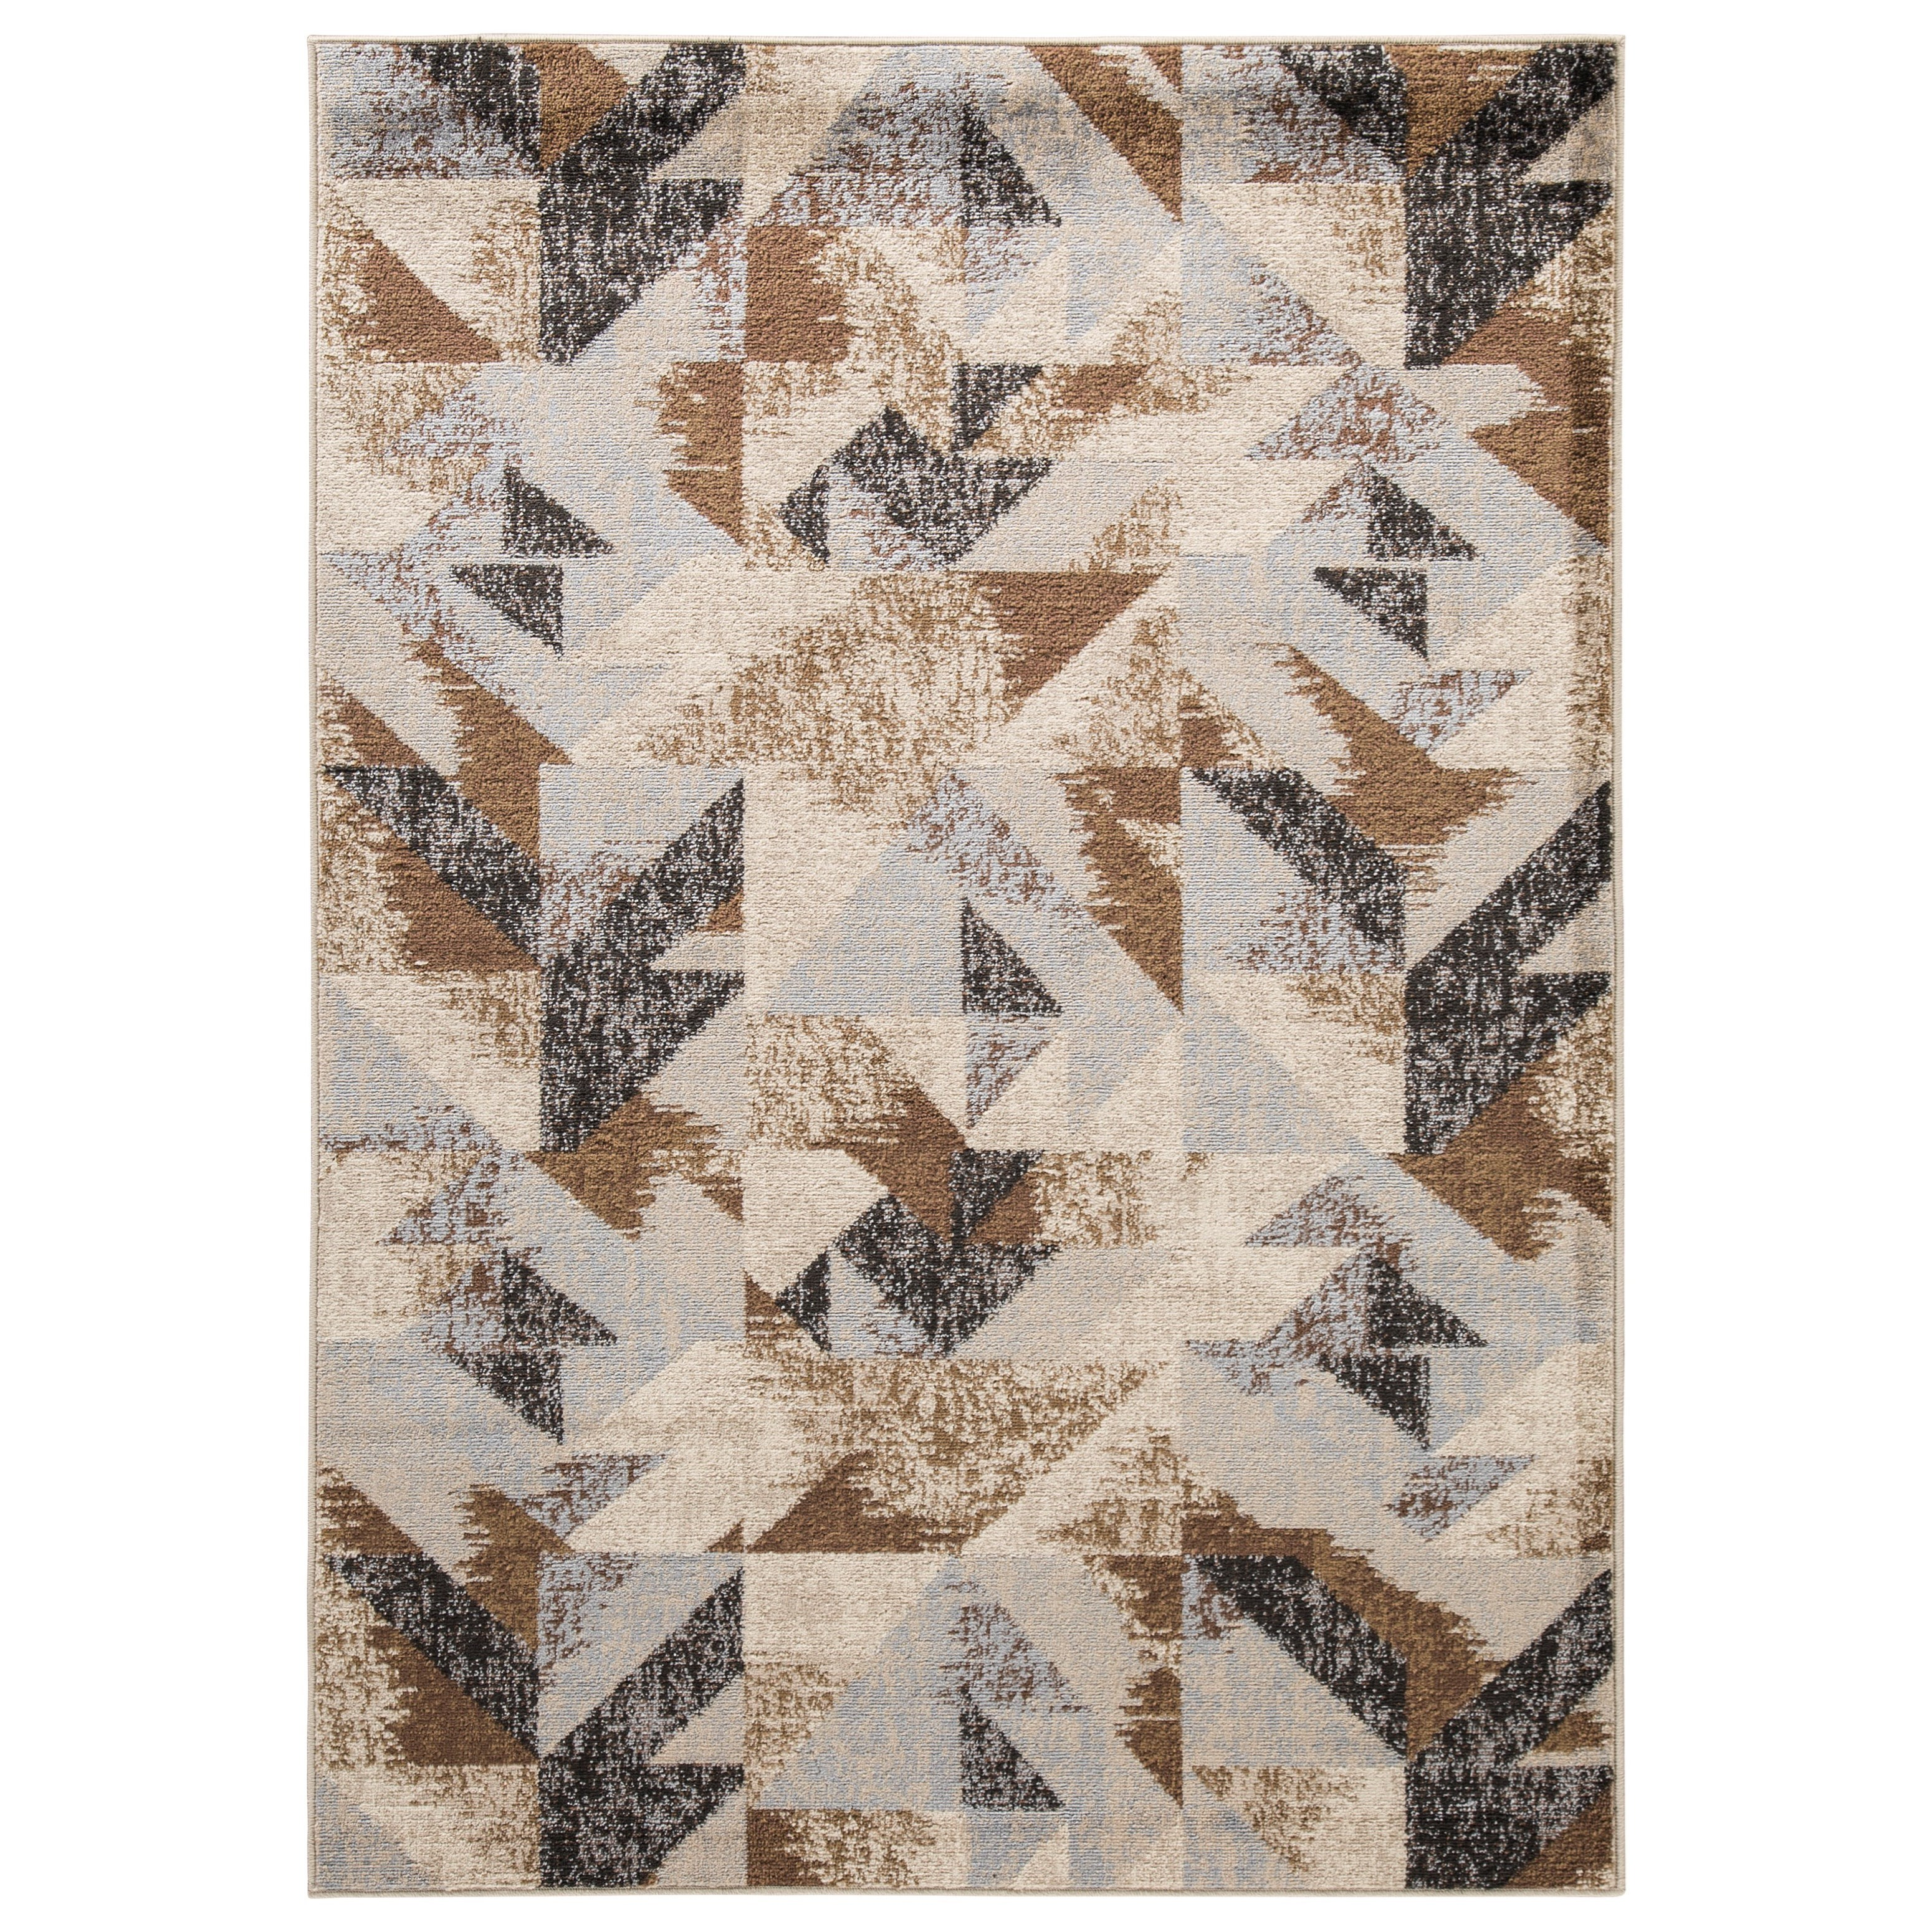 Contemporary Area Rugs Jun Multi Medium Rug by Signature at Walker's Furniture